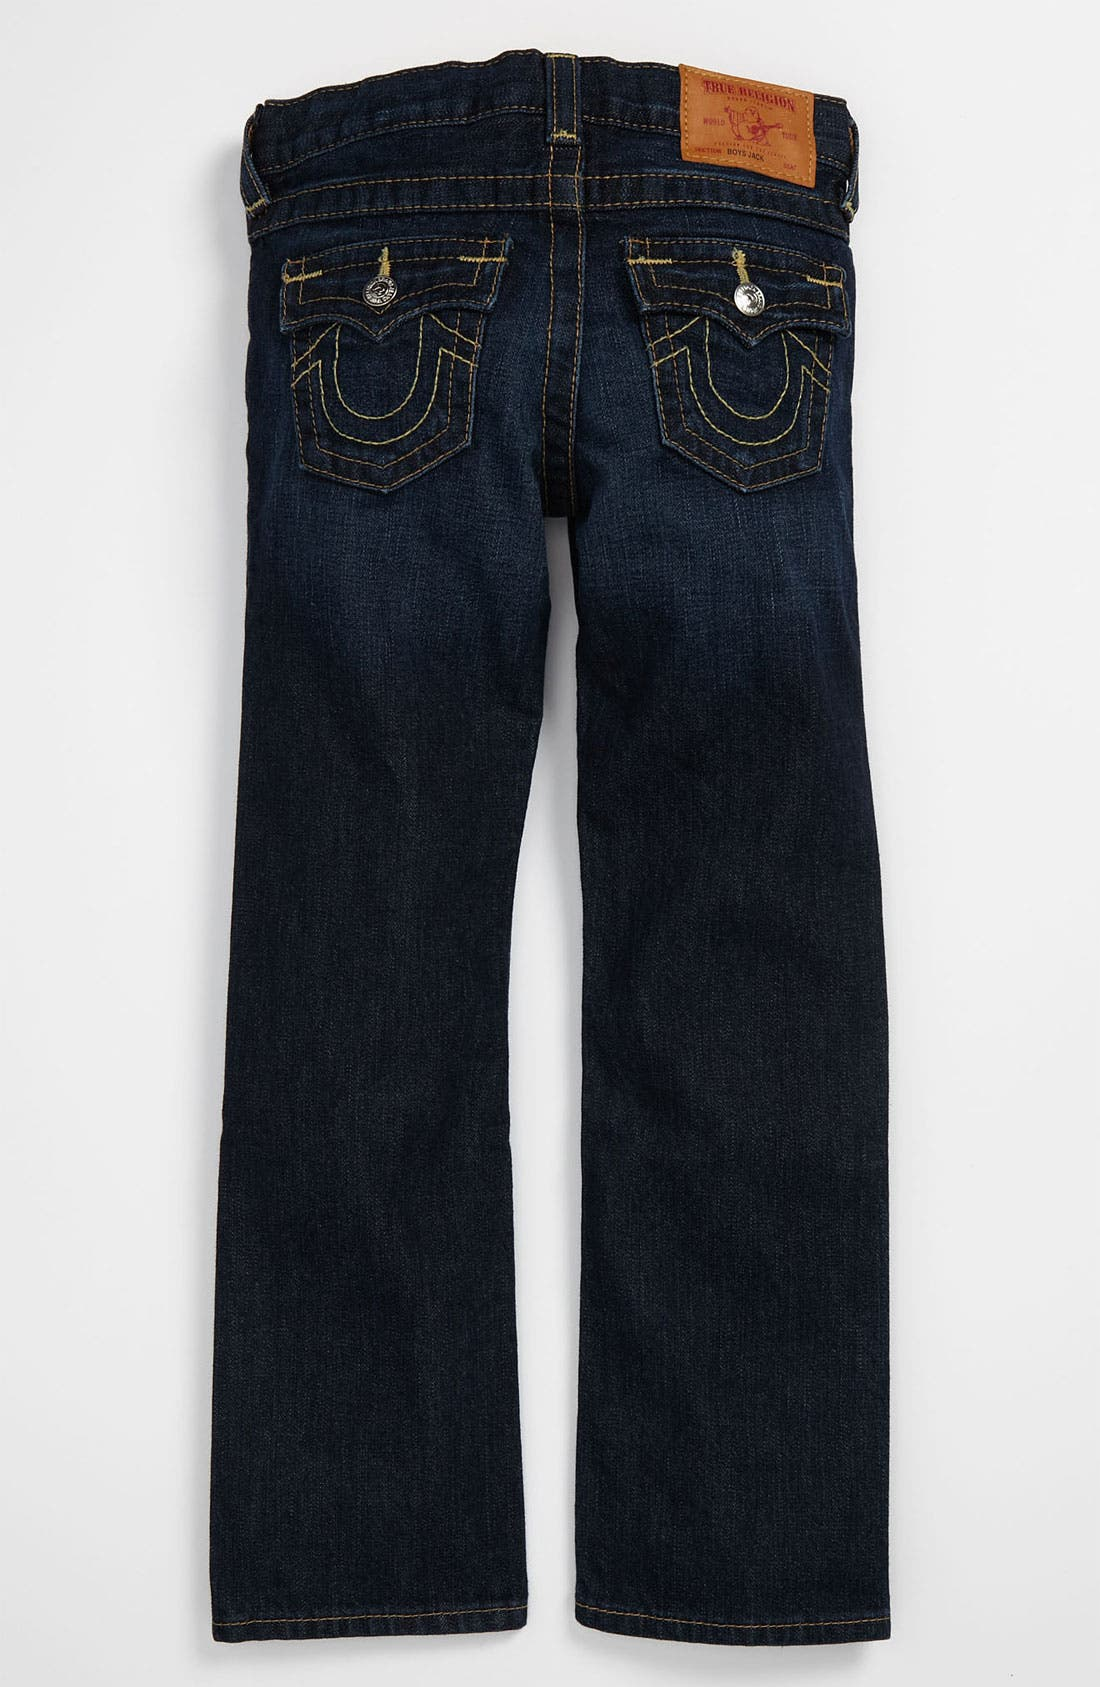 Alternate Image 1 Selected - True Religion Brand Jeans 'Jack' Straight Leg Jeans (Little Boys)